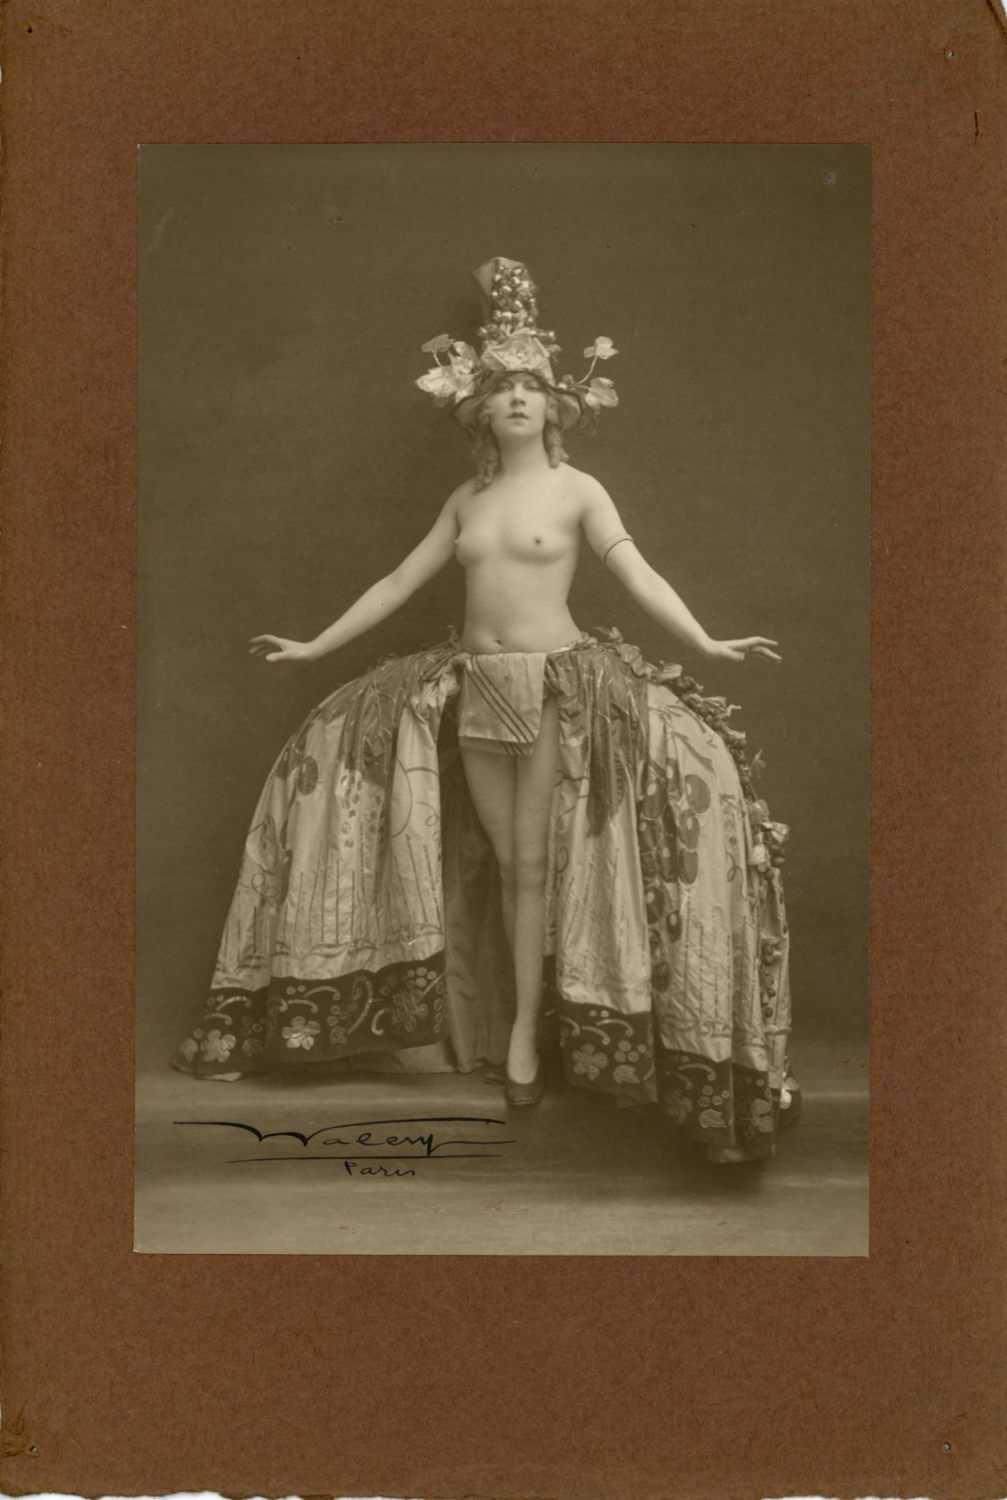 Image of Waléry: a nude dancer from the Folies Bergères in Paris, 1925